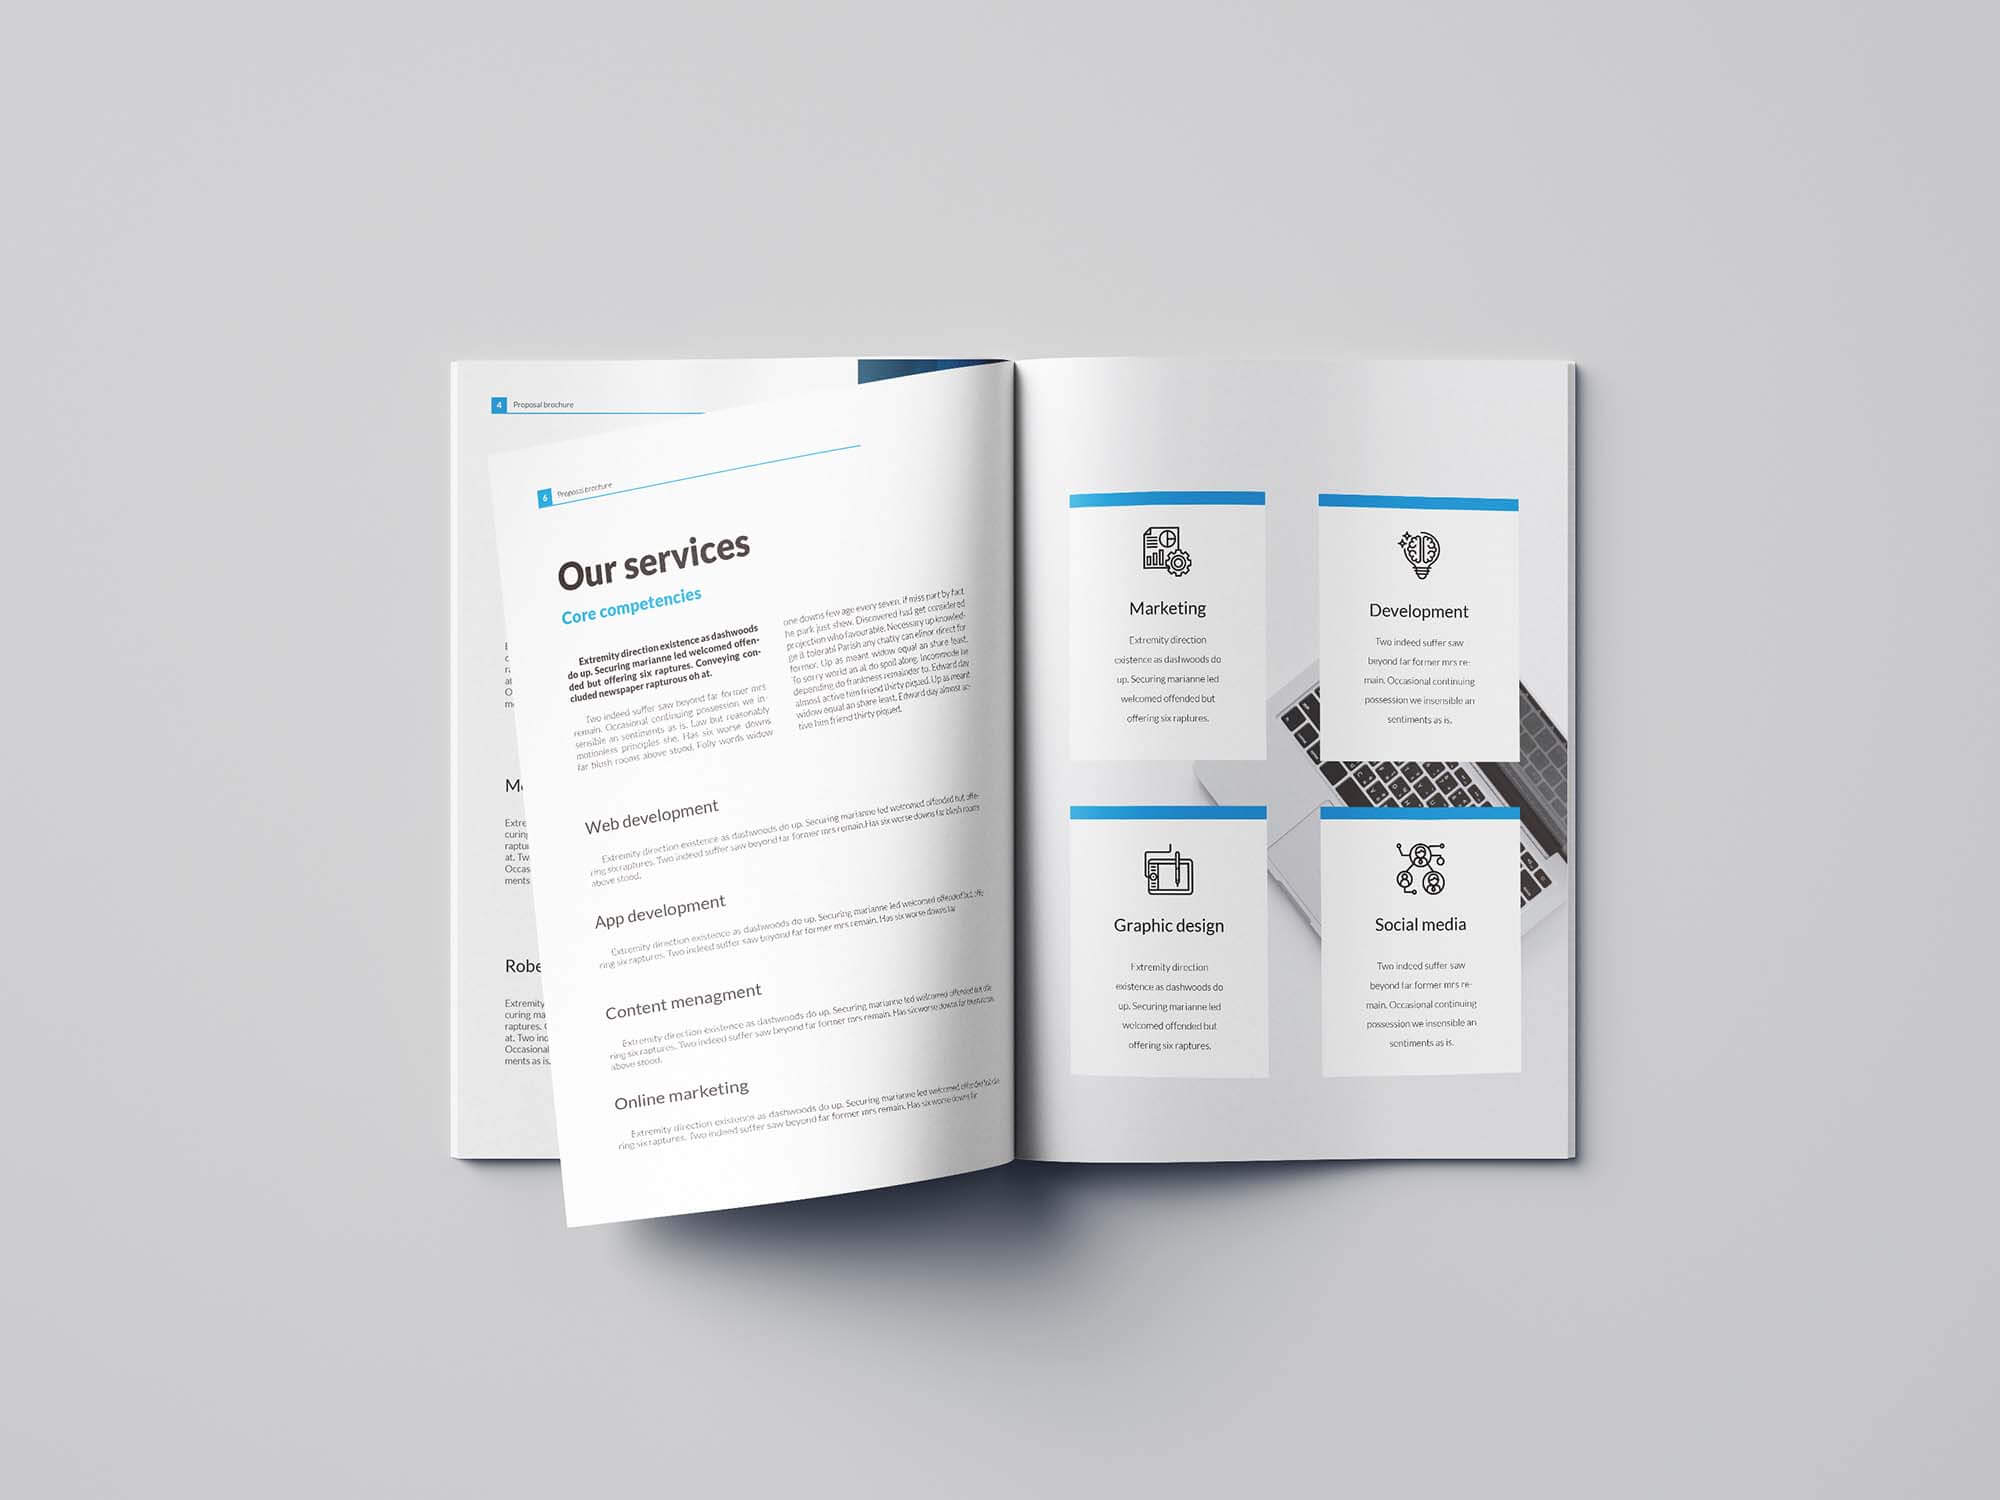 Free Business Proposal Template (Indesign) Within Brochure Template Indesign Free Download